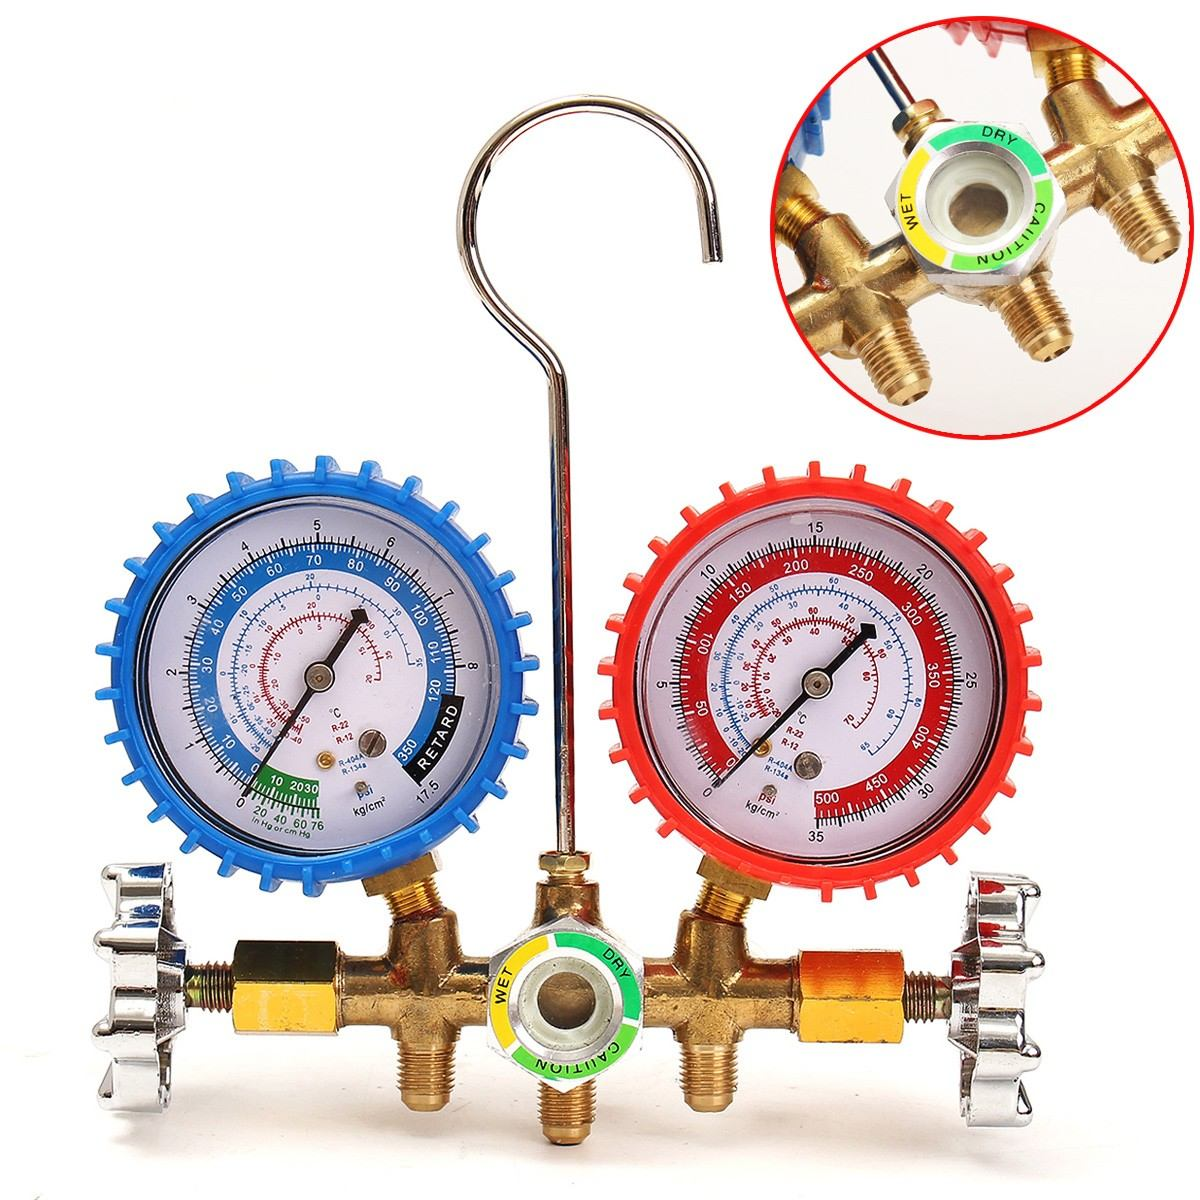 home improvement : Air Conditioning Manifold Gauge Set Lightweight Test Diagnostic Kit for R134A R12 R22 R502 Refrigerant Portable Repair Tools